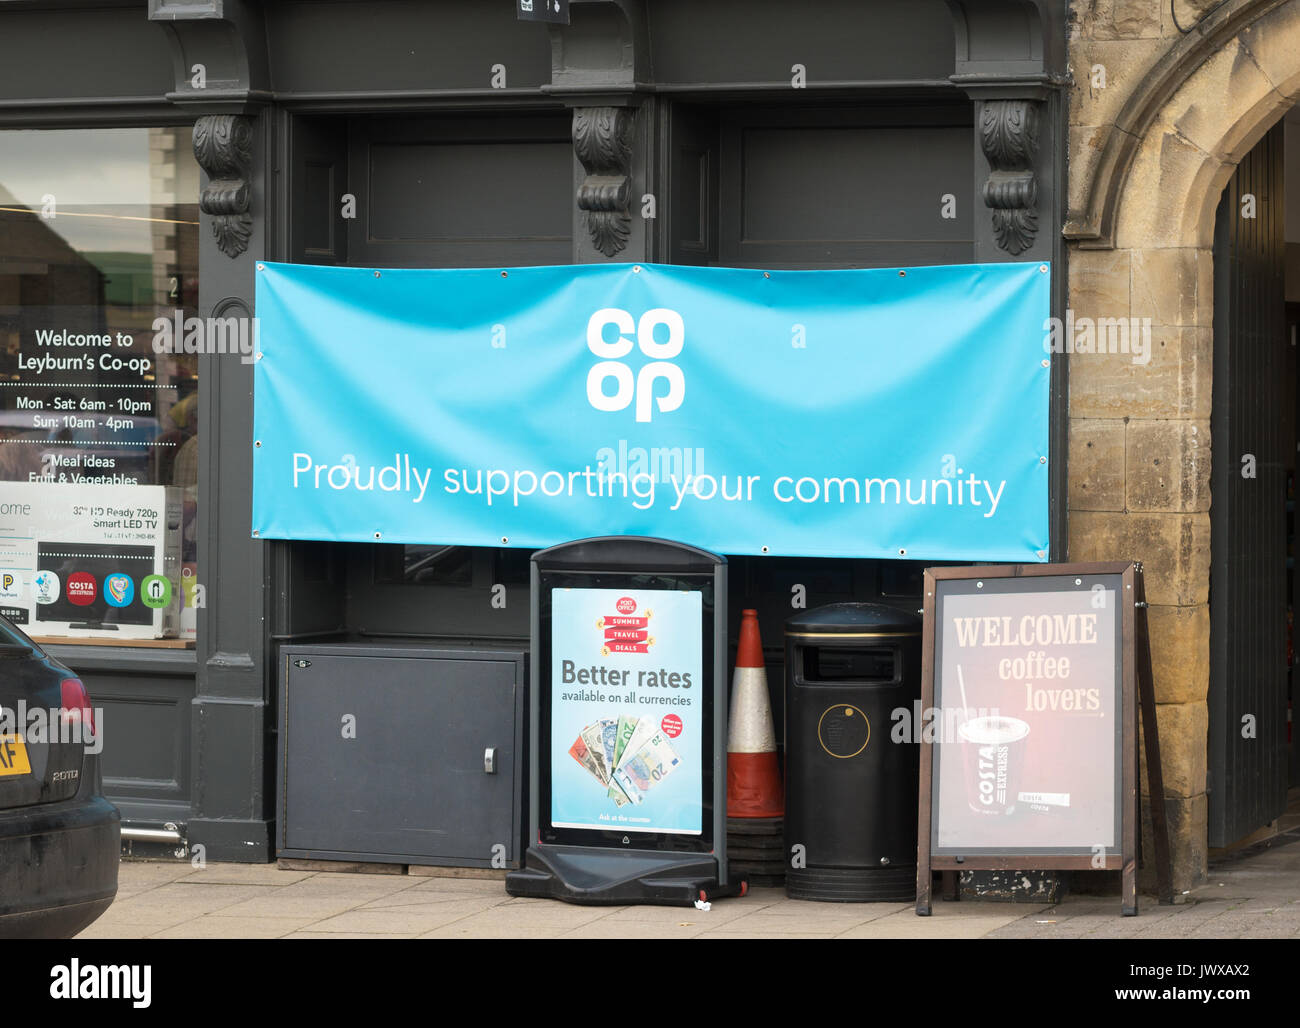 Co-op sign, Proudly supporting your community, Leyburn, Wensleydale, North Yorkshire, England, UK - Stock Image